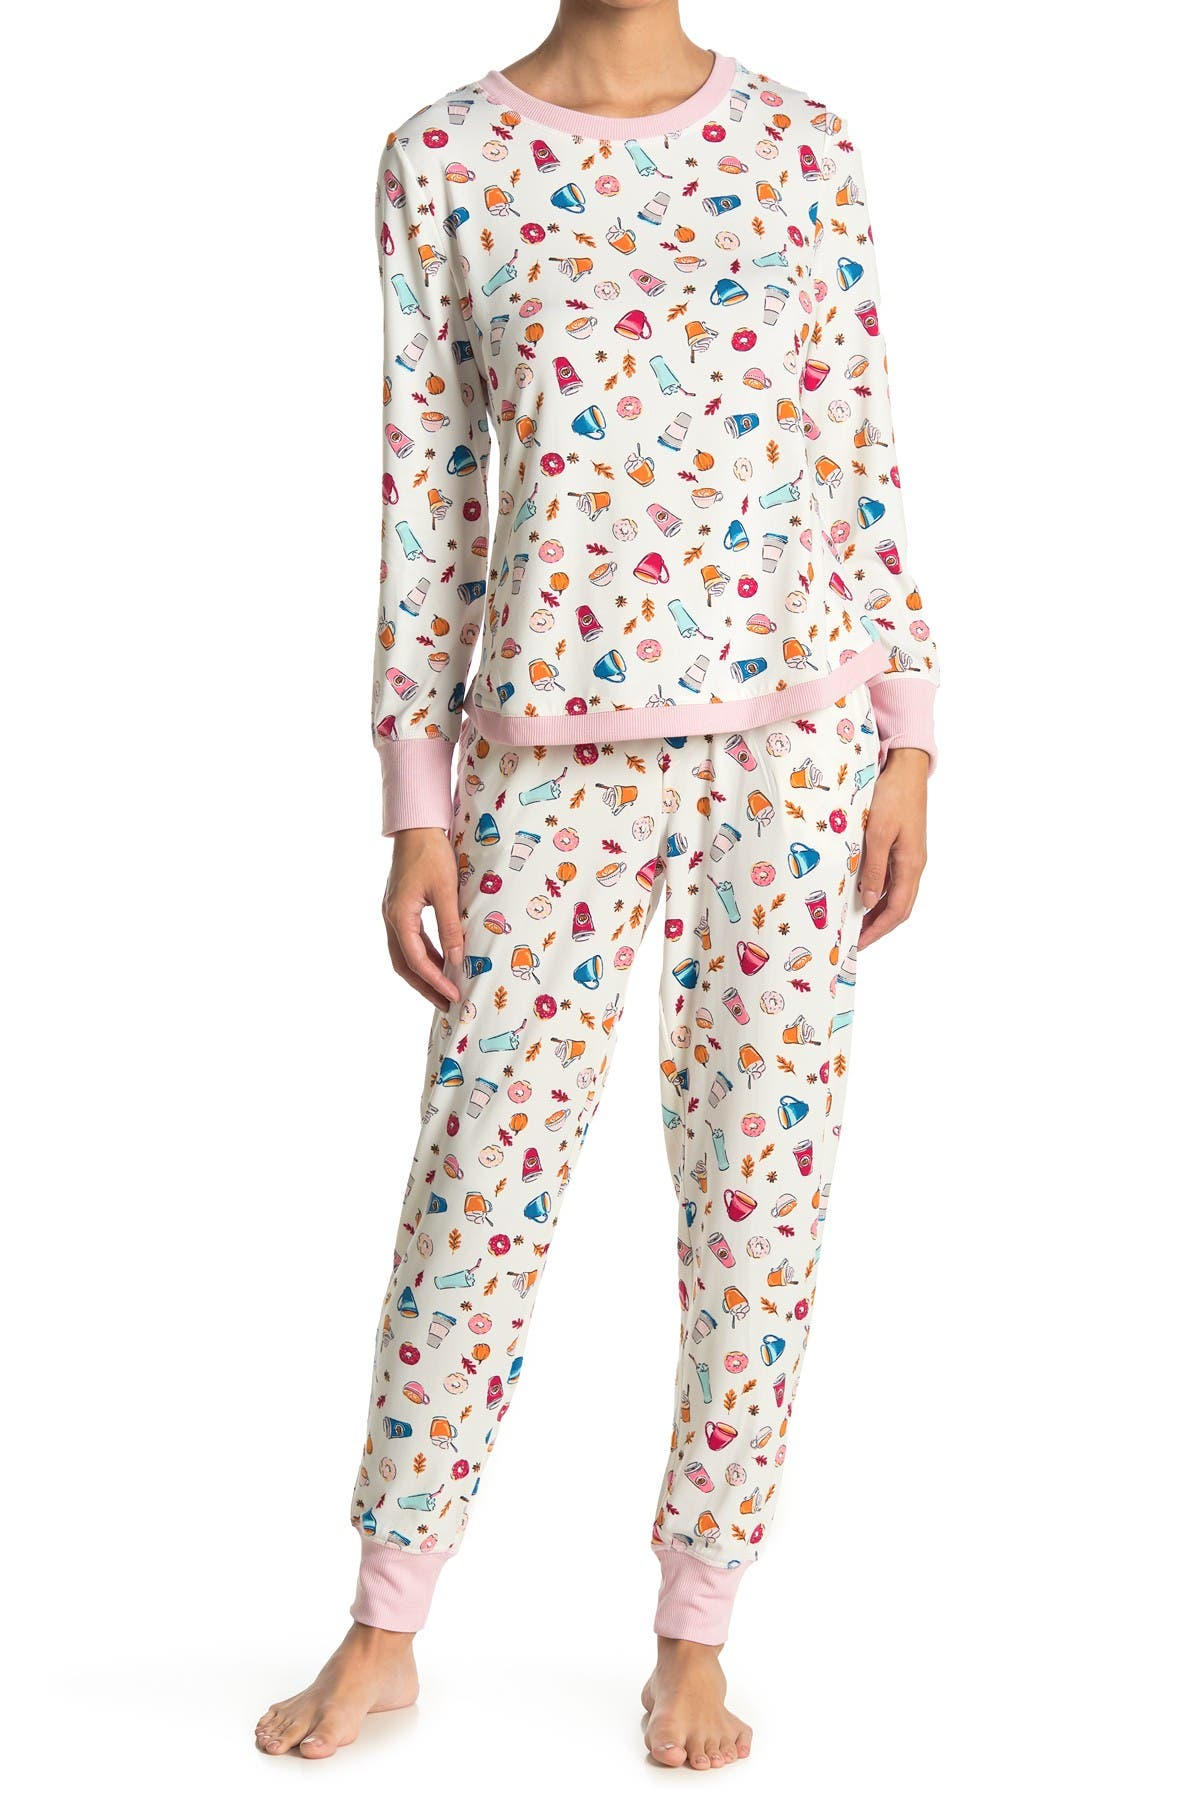 Image of Jane & Bleecker New York Long Sleeve Top & Joggers 2-Piece Pajama Set